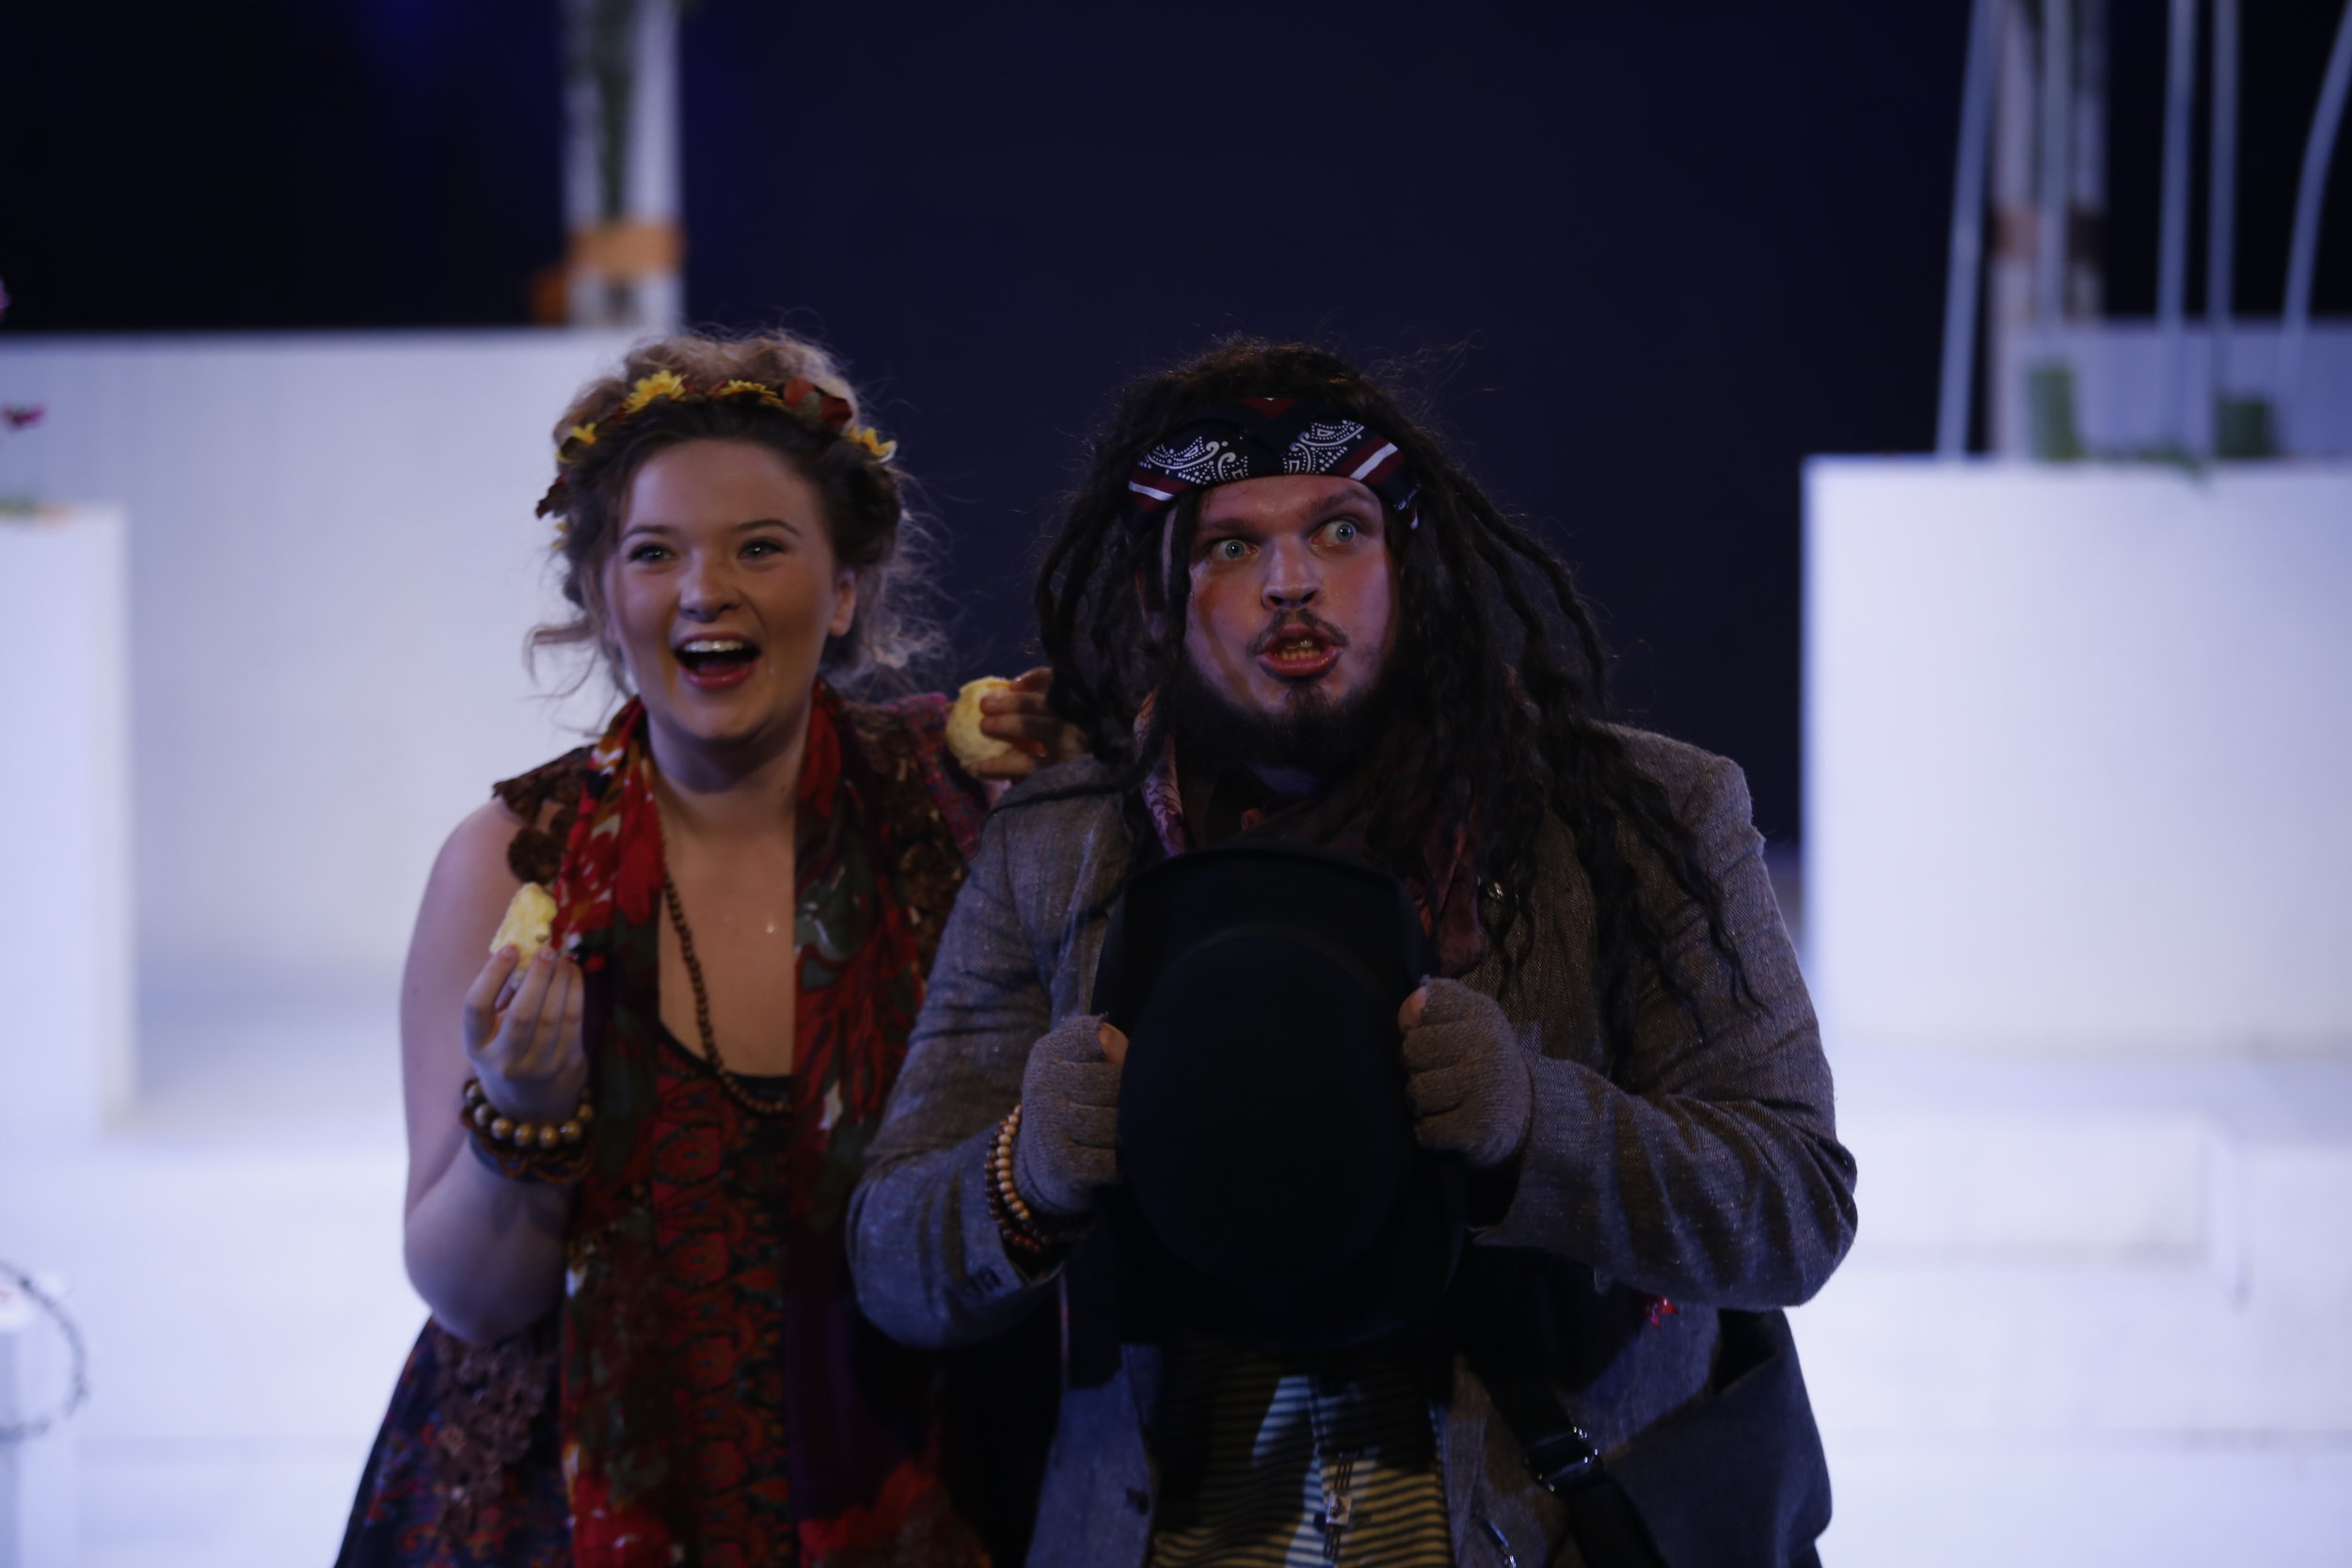 Verges in Much Ado About Nothing